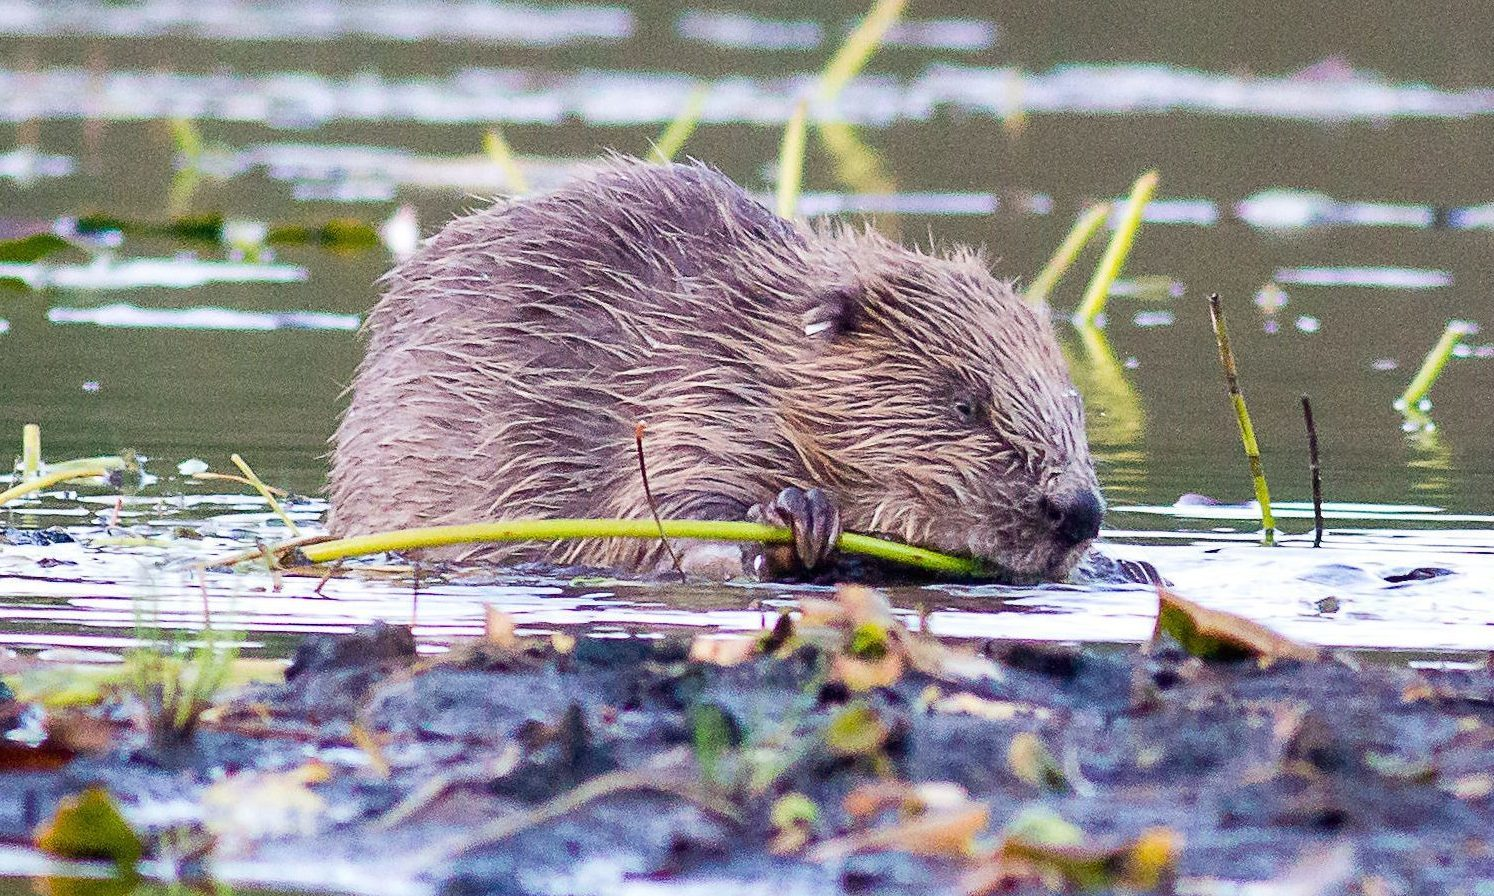 Beavers are to get protected status as eleventh-hour bid to block the new law fails.